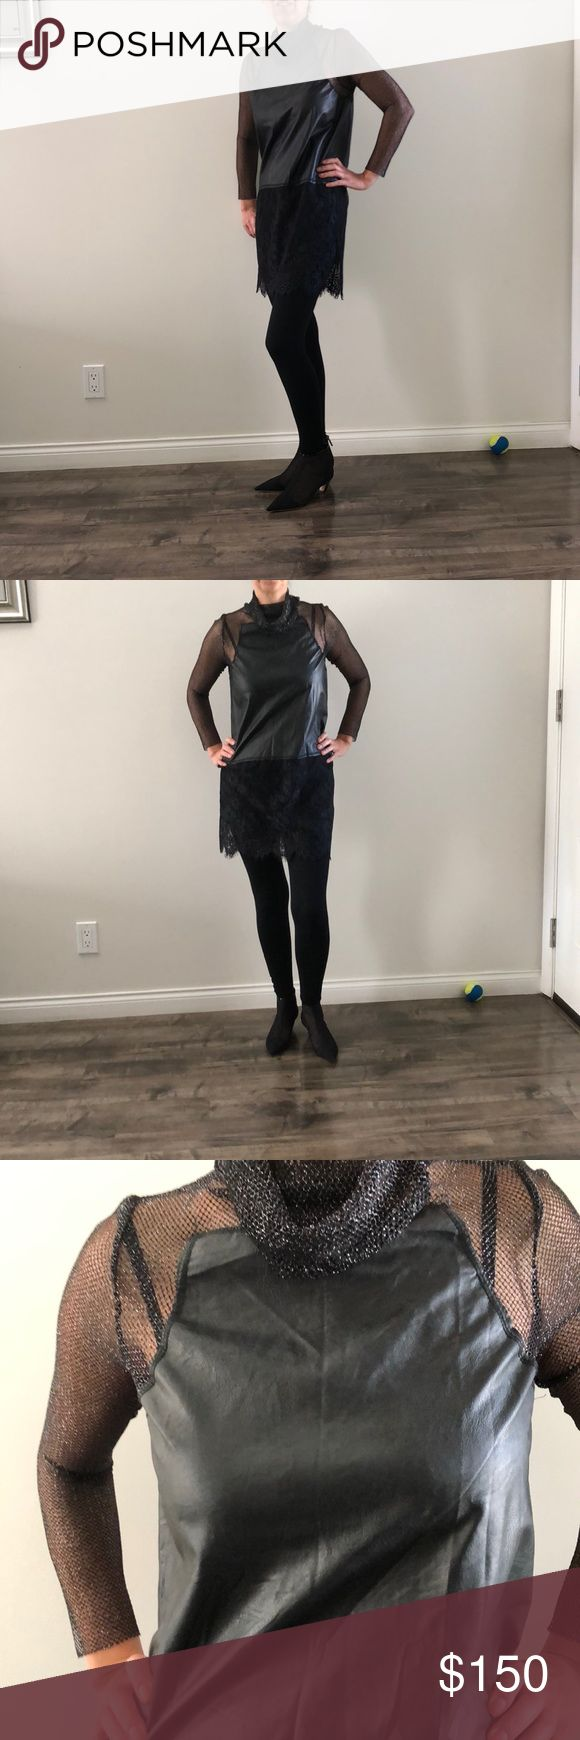 Black evening top with mesh net sleeves Black evening top with mesh net sleeves with faux leather front. Made in Italy. NWT. Vanessa Scott Tops Blouses